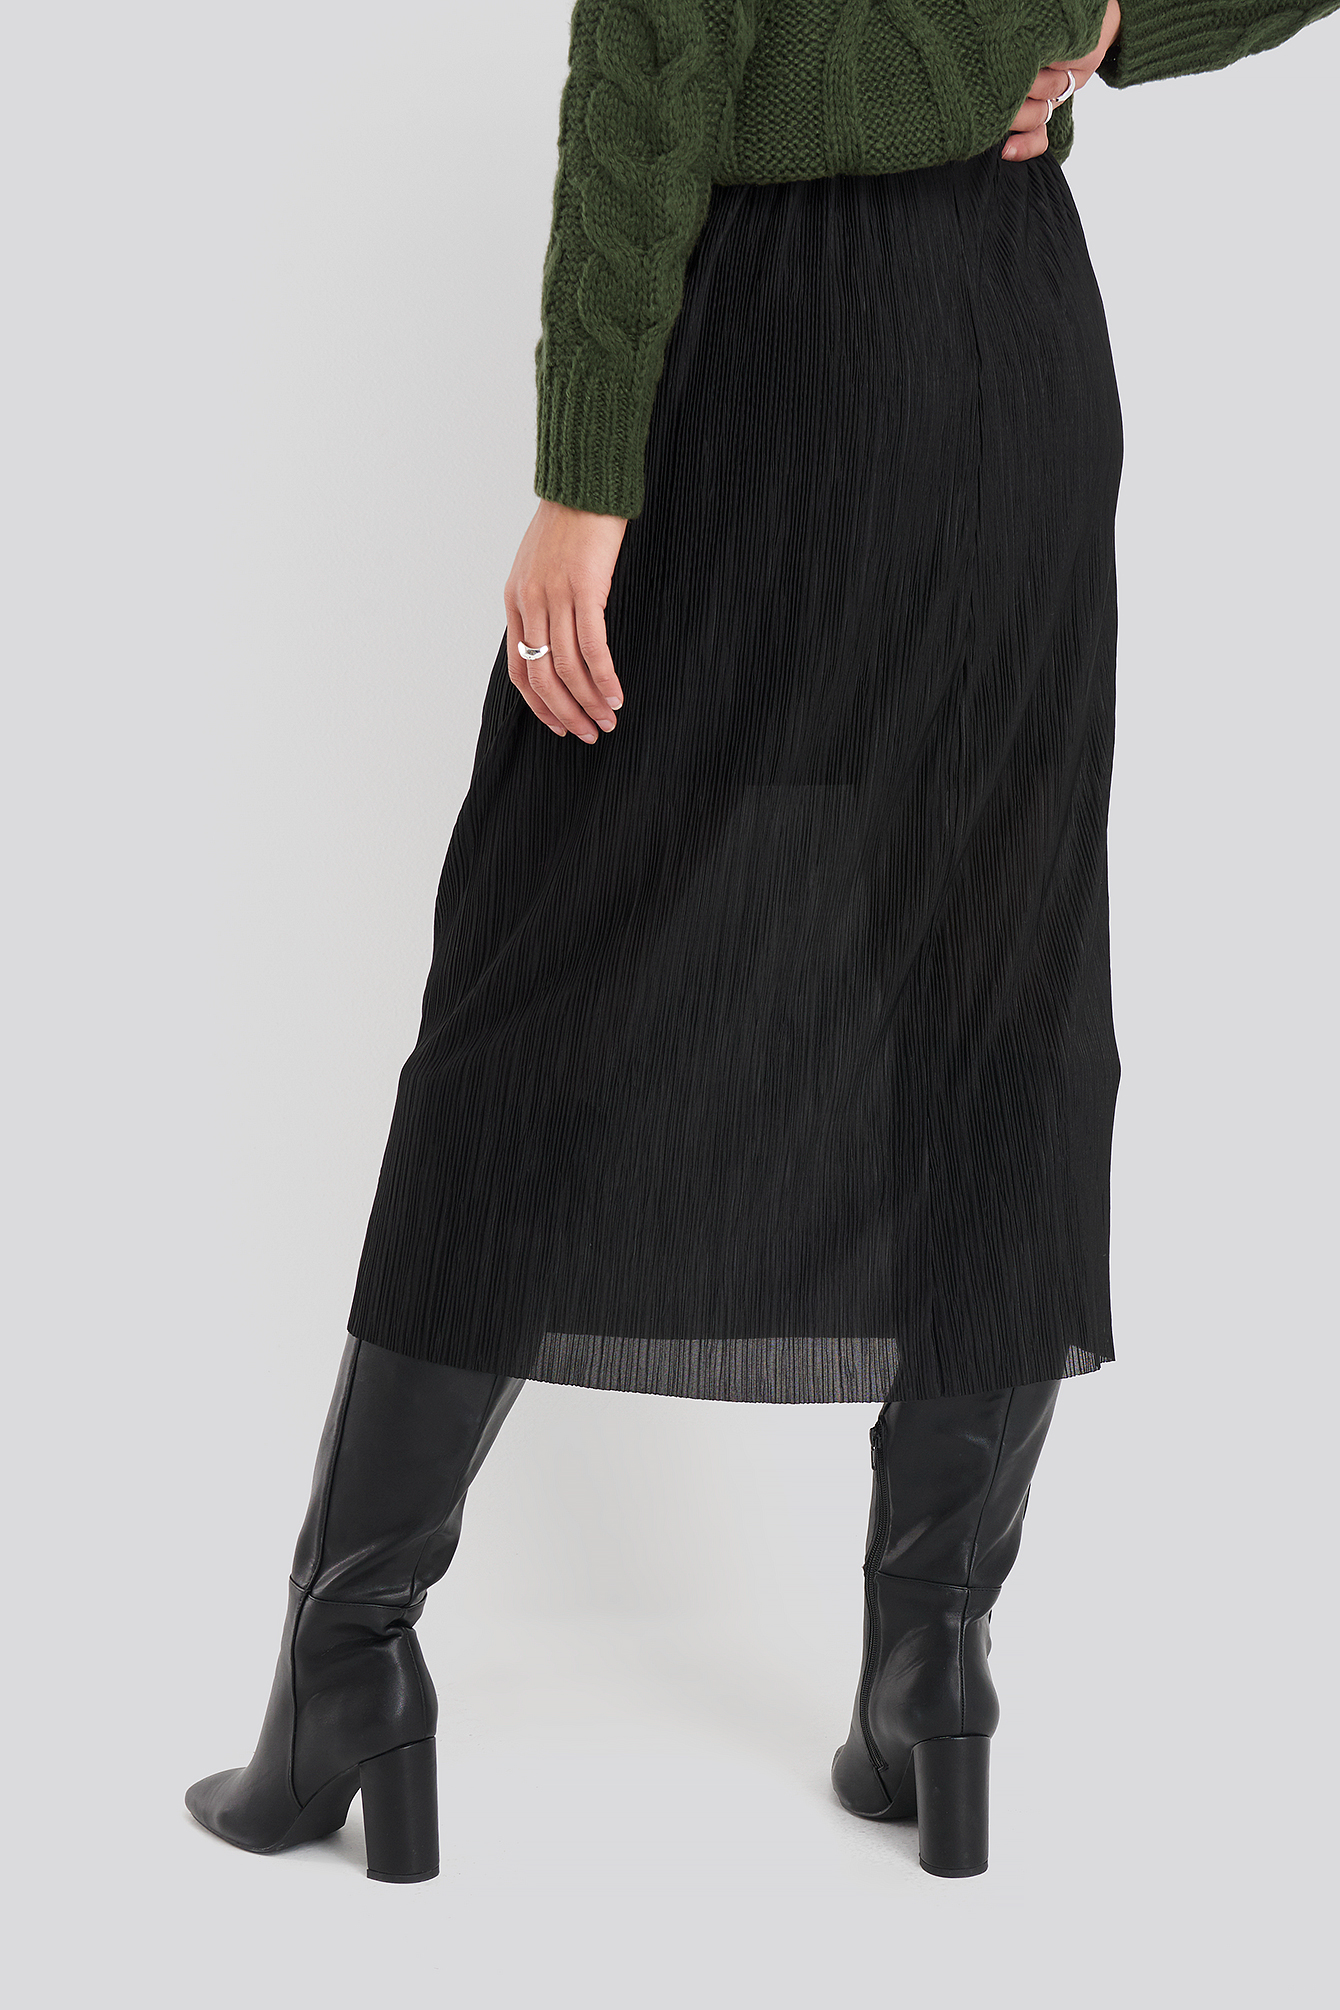 Black Vices Skirt